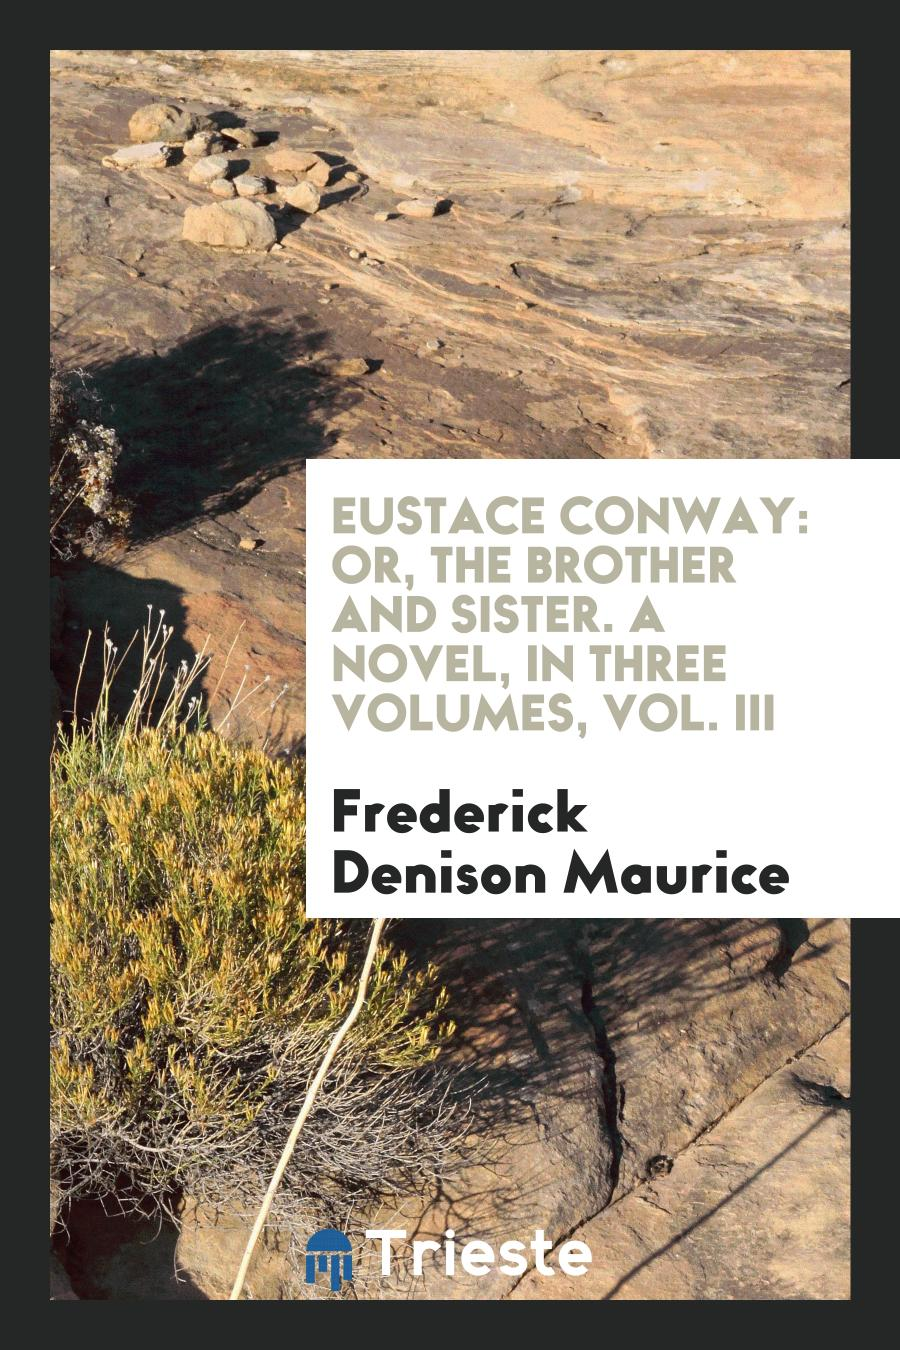 Eustace Conway: Or, The Brother and Sister. A Novel, in Three Volumes, Vol. III